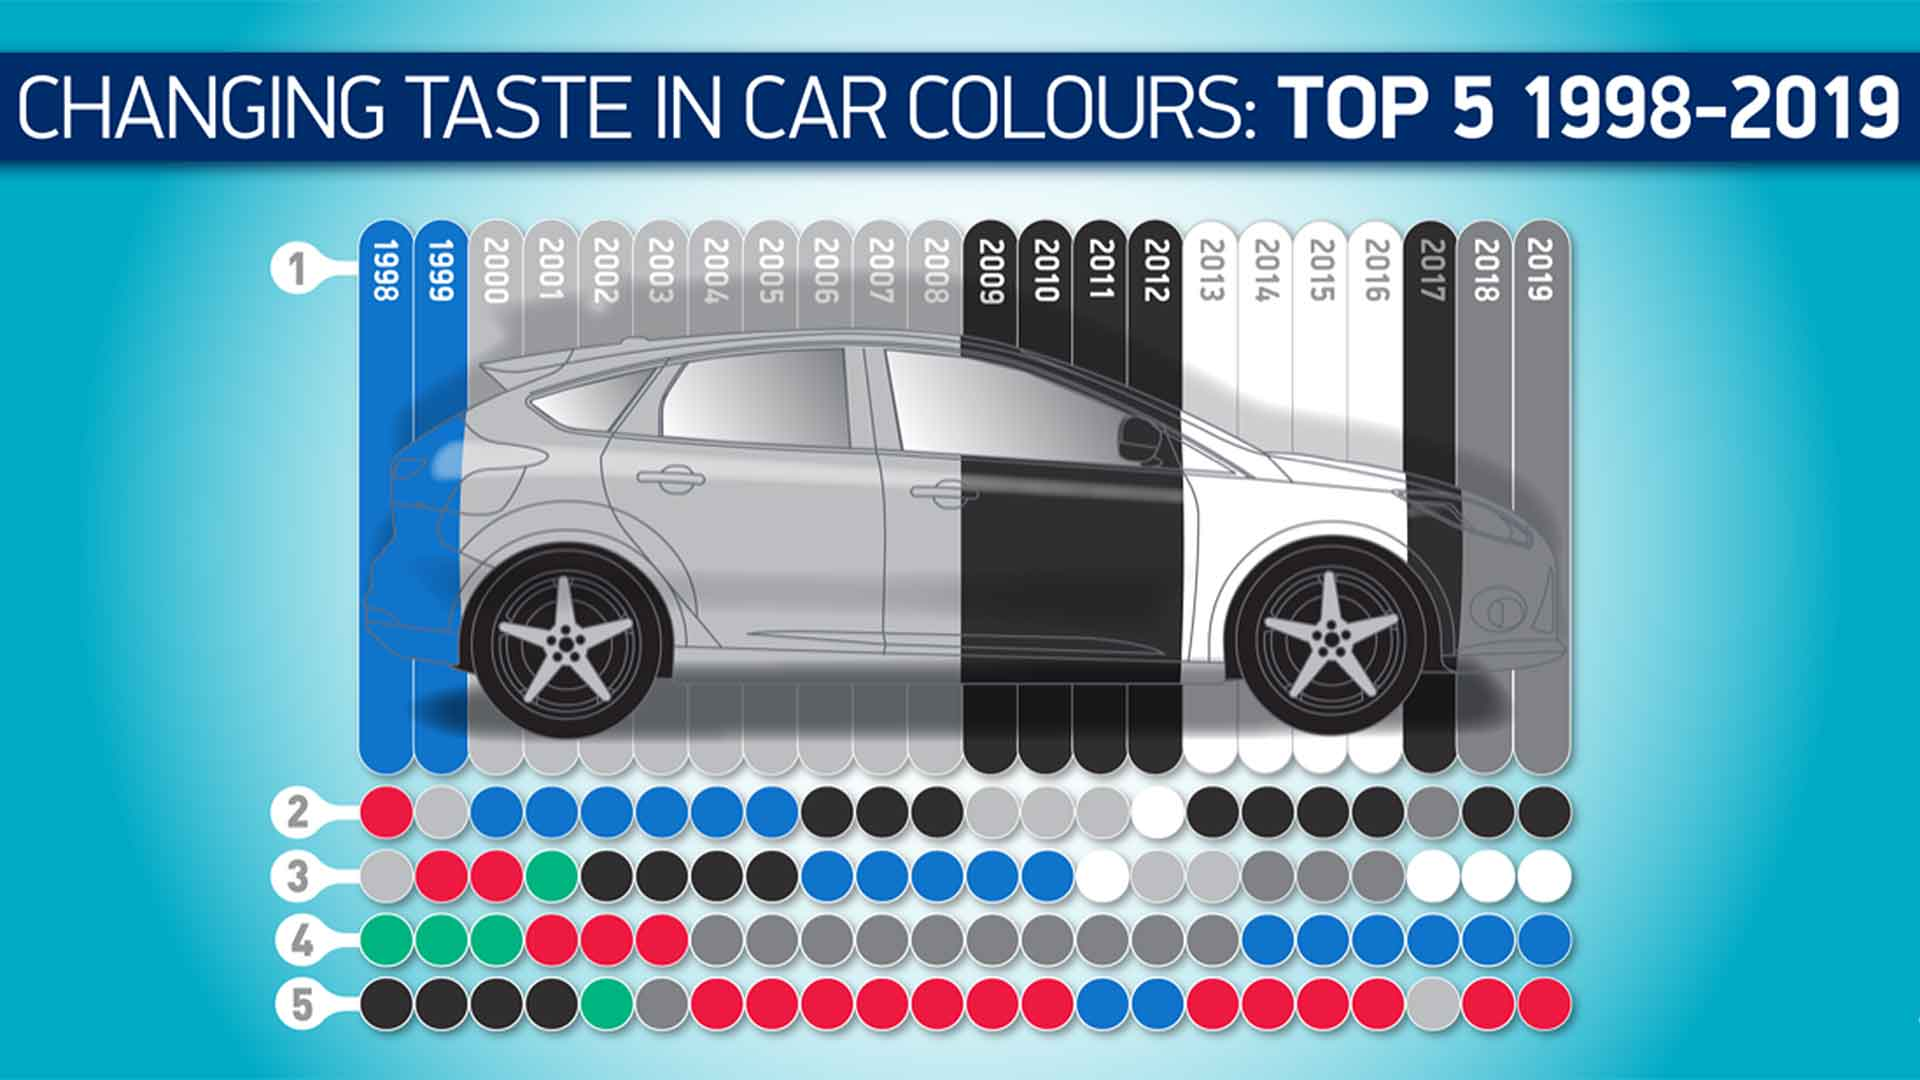 UK top five car colours 1999-2019